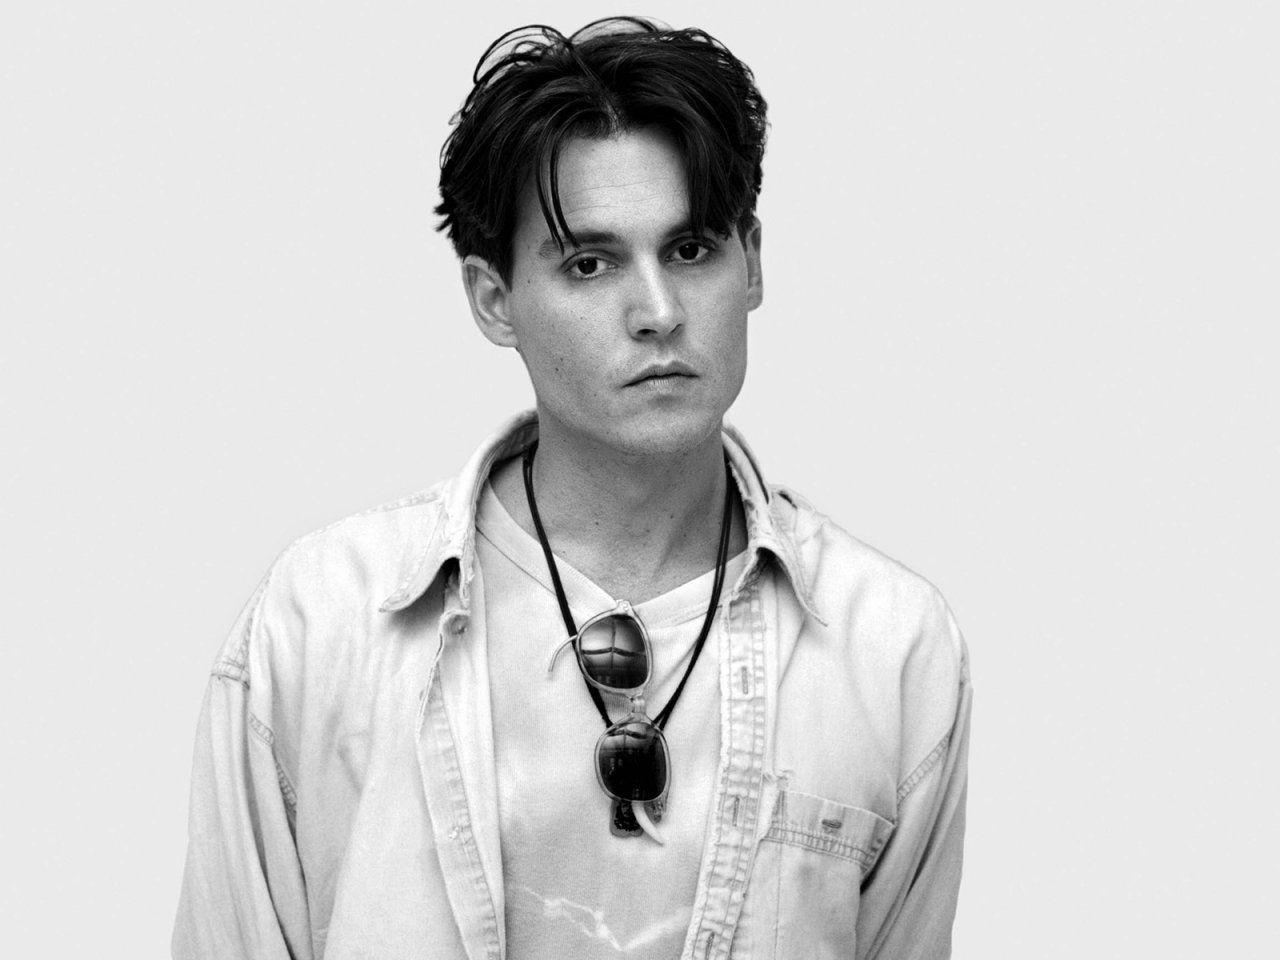 johnny depp young wallpaper iphone